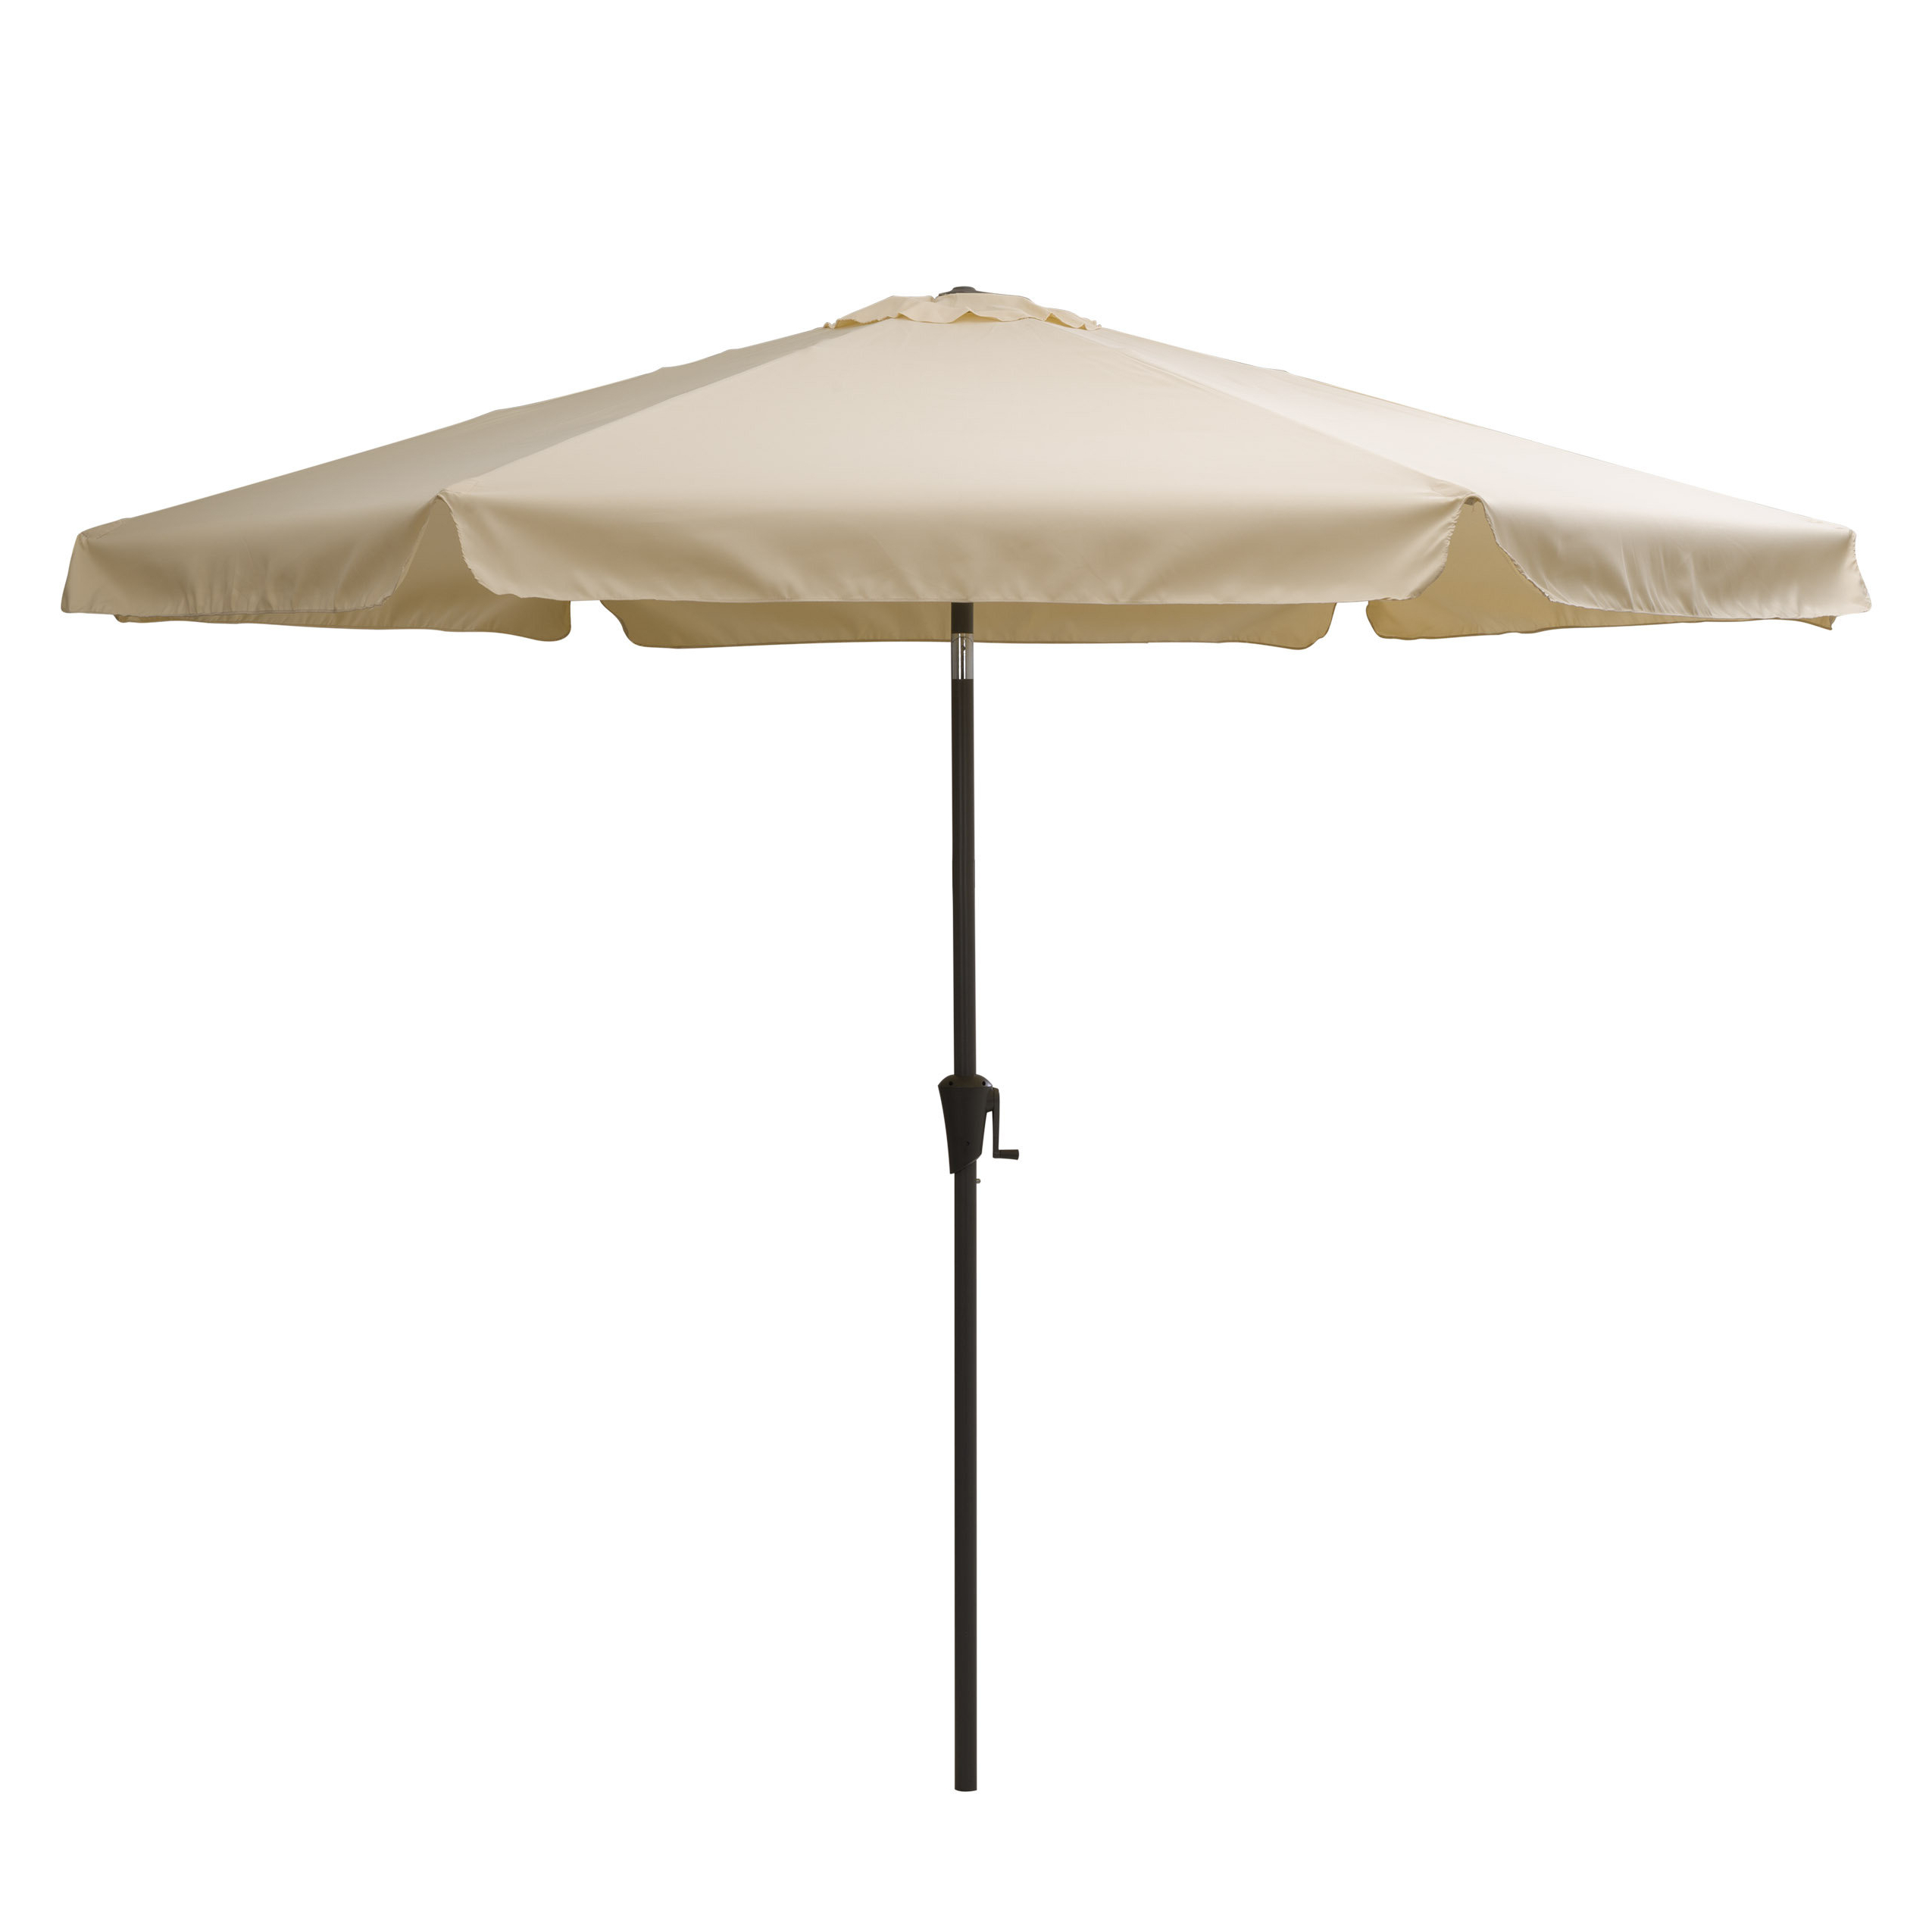 Newest Crowborough 10' Market Umbrella Inside Crowborough Market Umbrellas (Gallery 3 of 20)